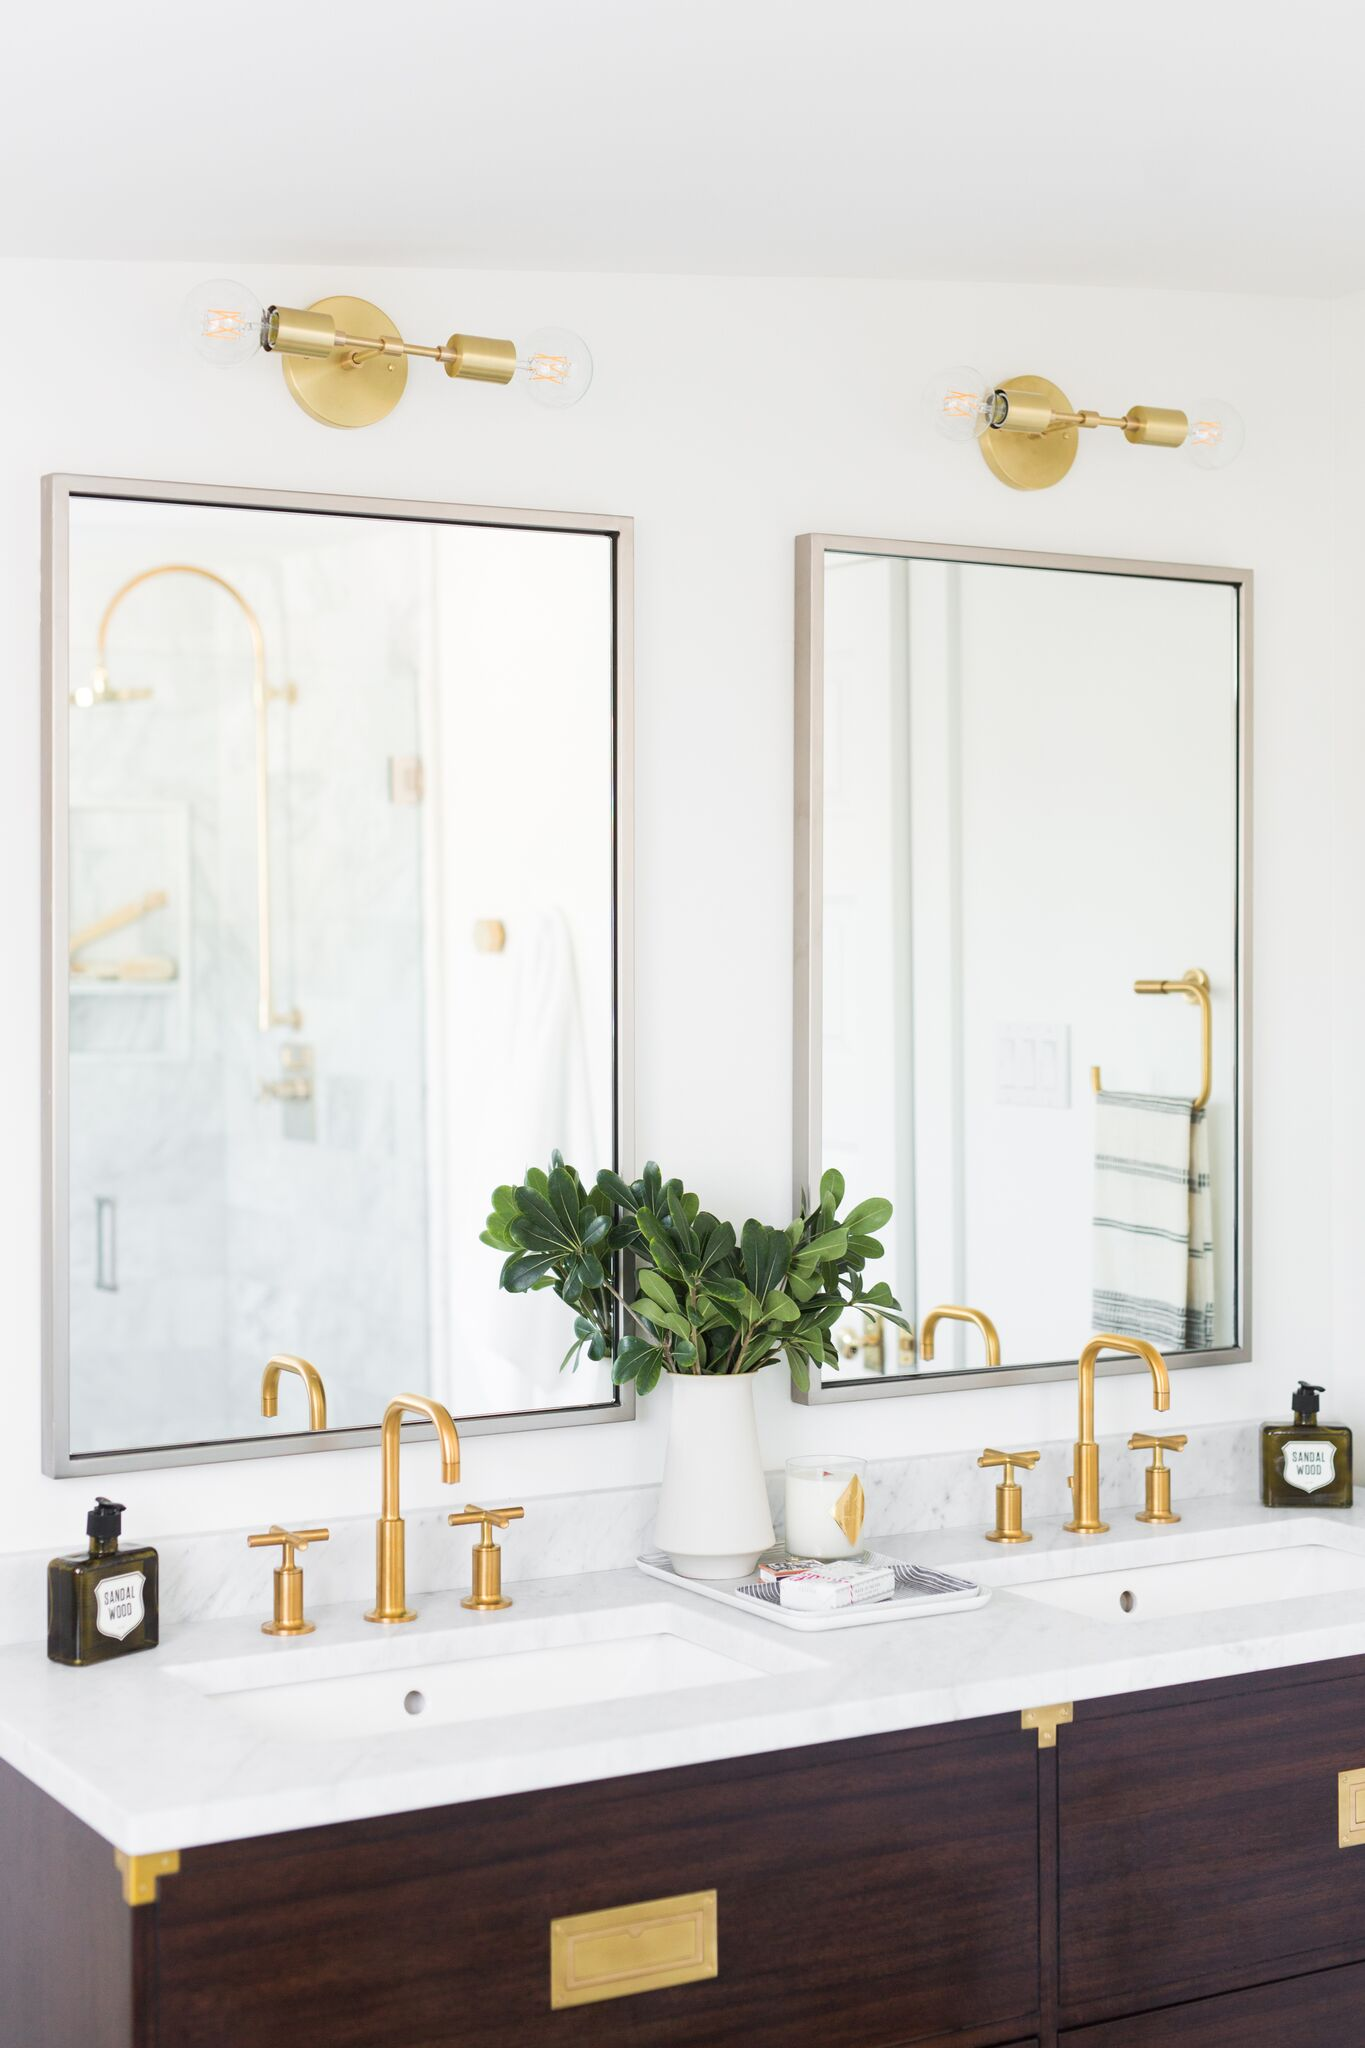 Gold light fixtures above the double mirrors